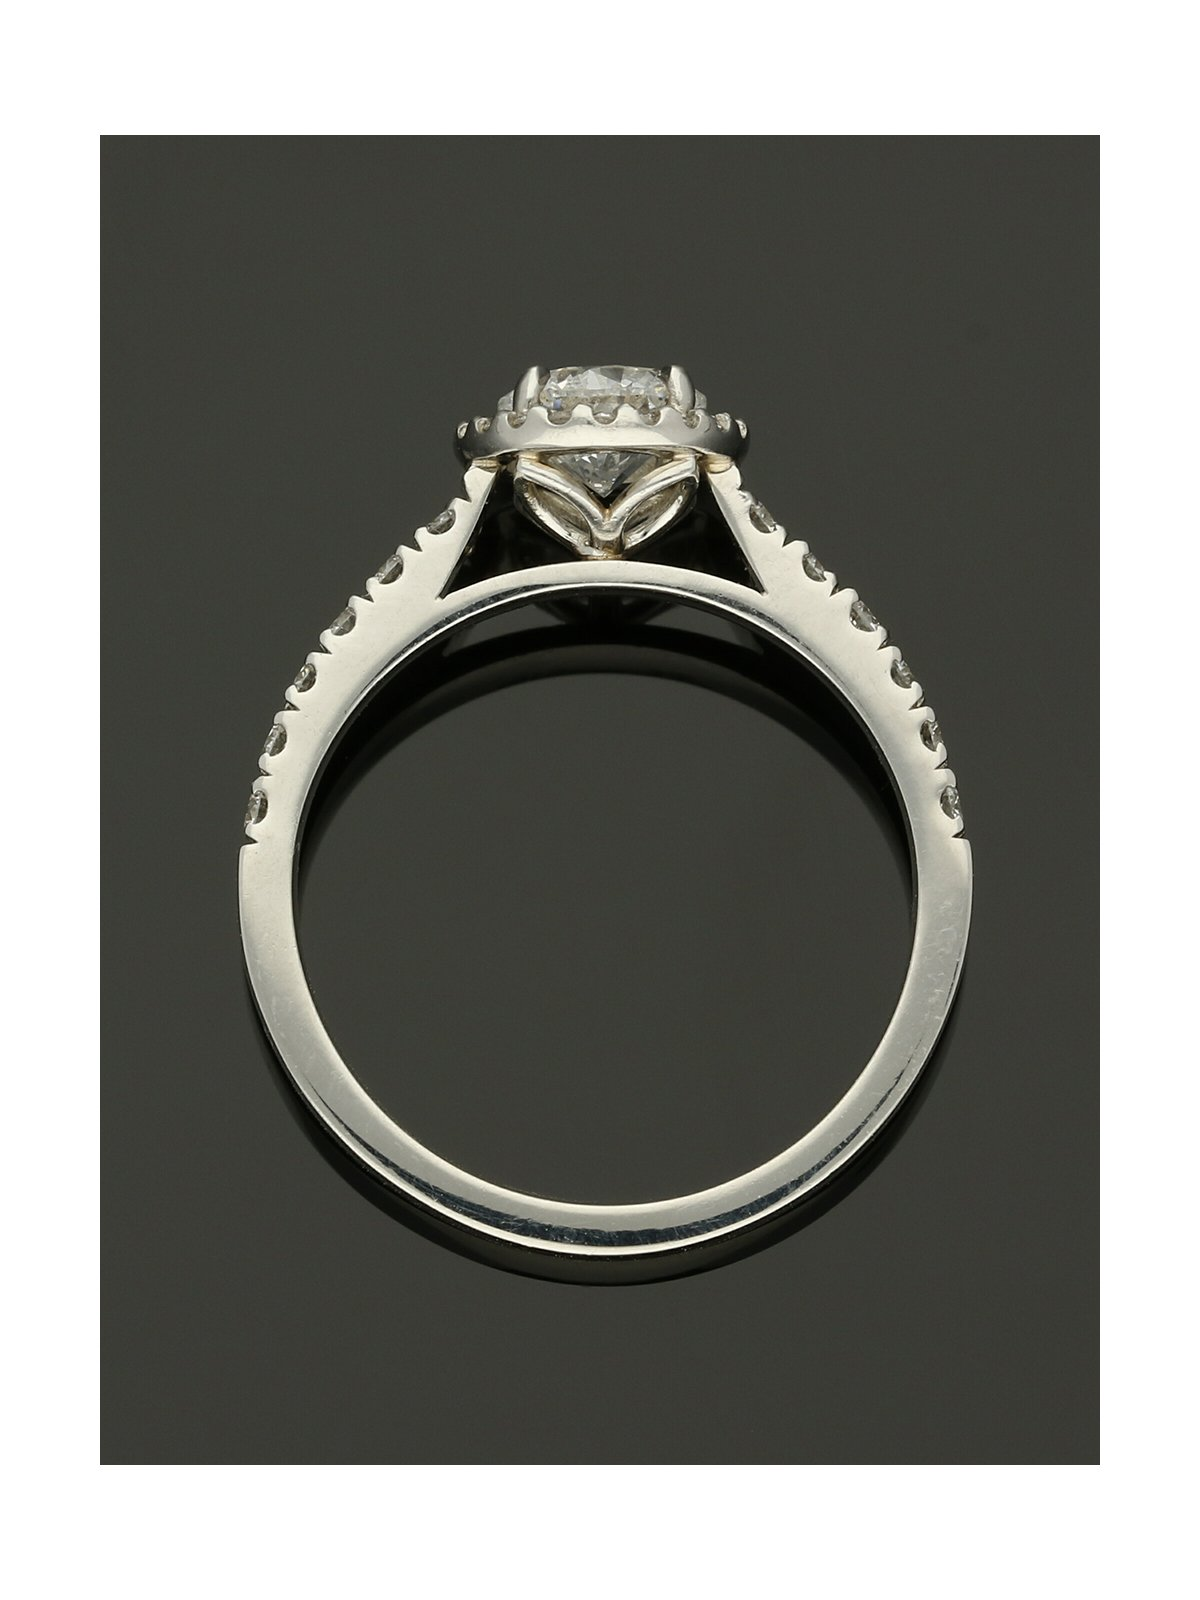 Diamond Halo Engagement Ring 0.70ct Certificated Round Brilliant Cut in Platinum with Diamond Shoulders